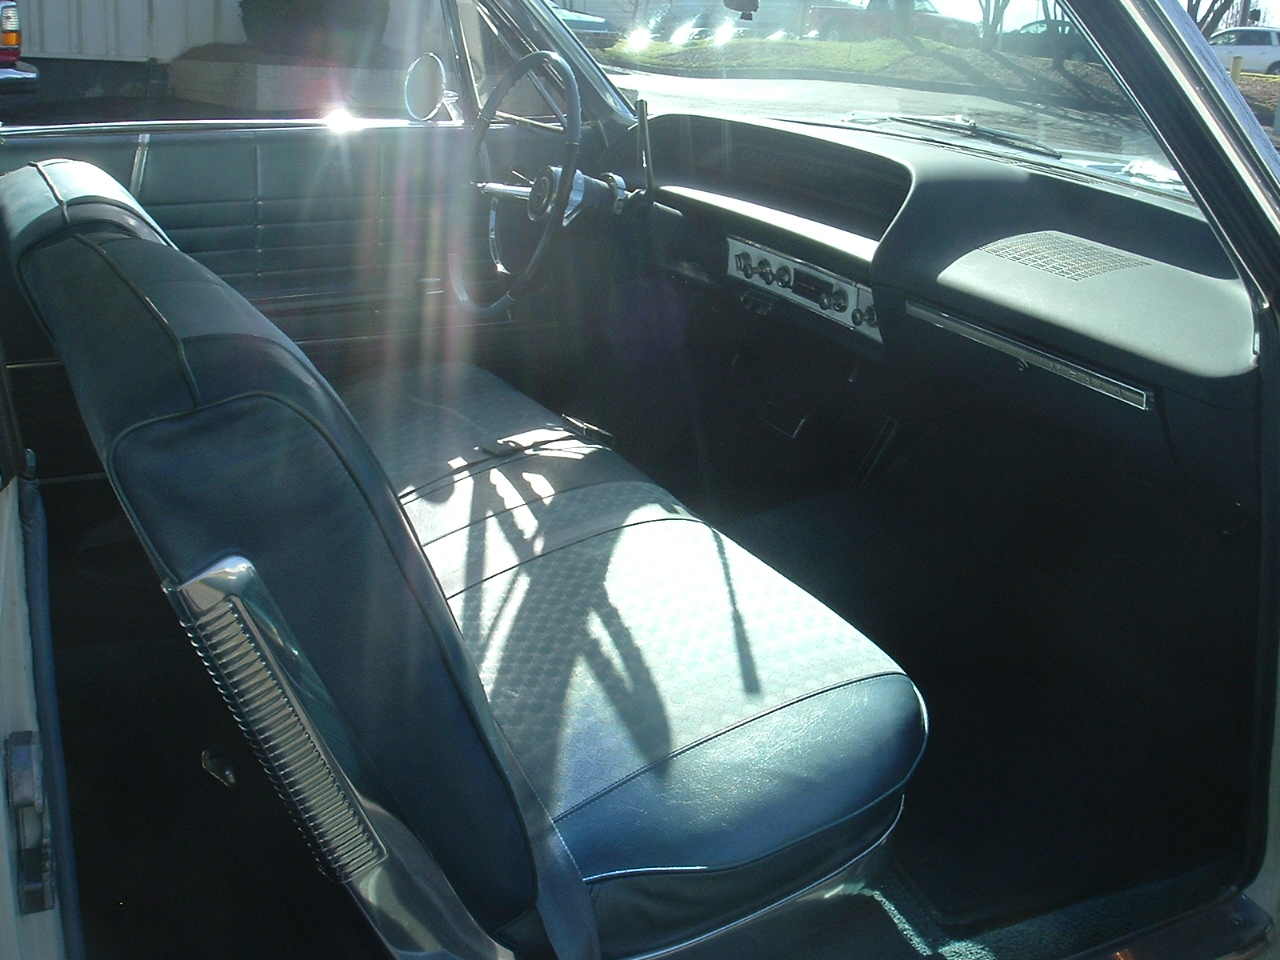 1964 Impala Two Door Hardtop White (15)